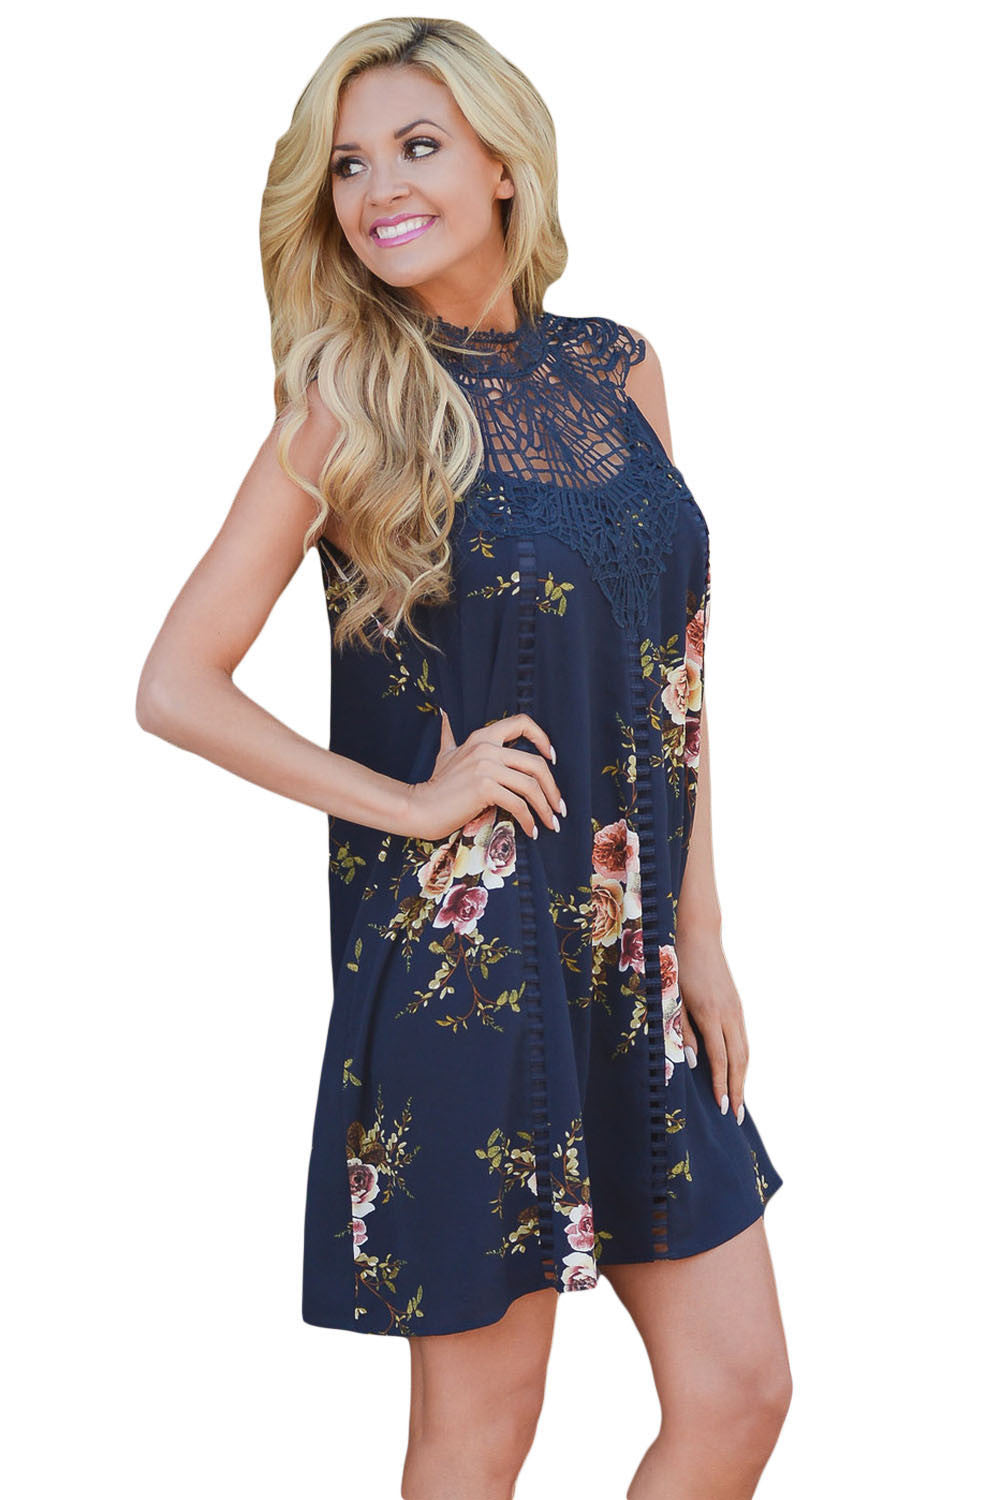 Her Fashion Classy Apricot Crochet Lace Neck Floral Dress